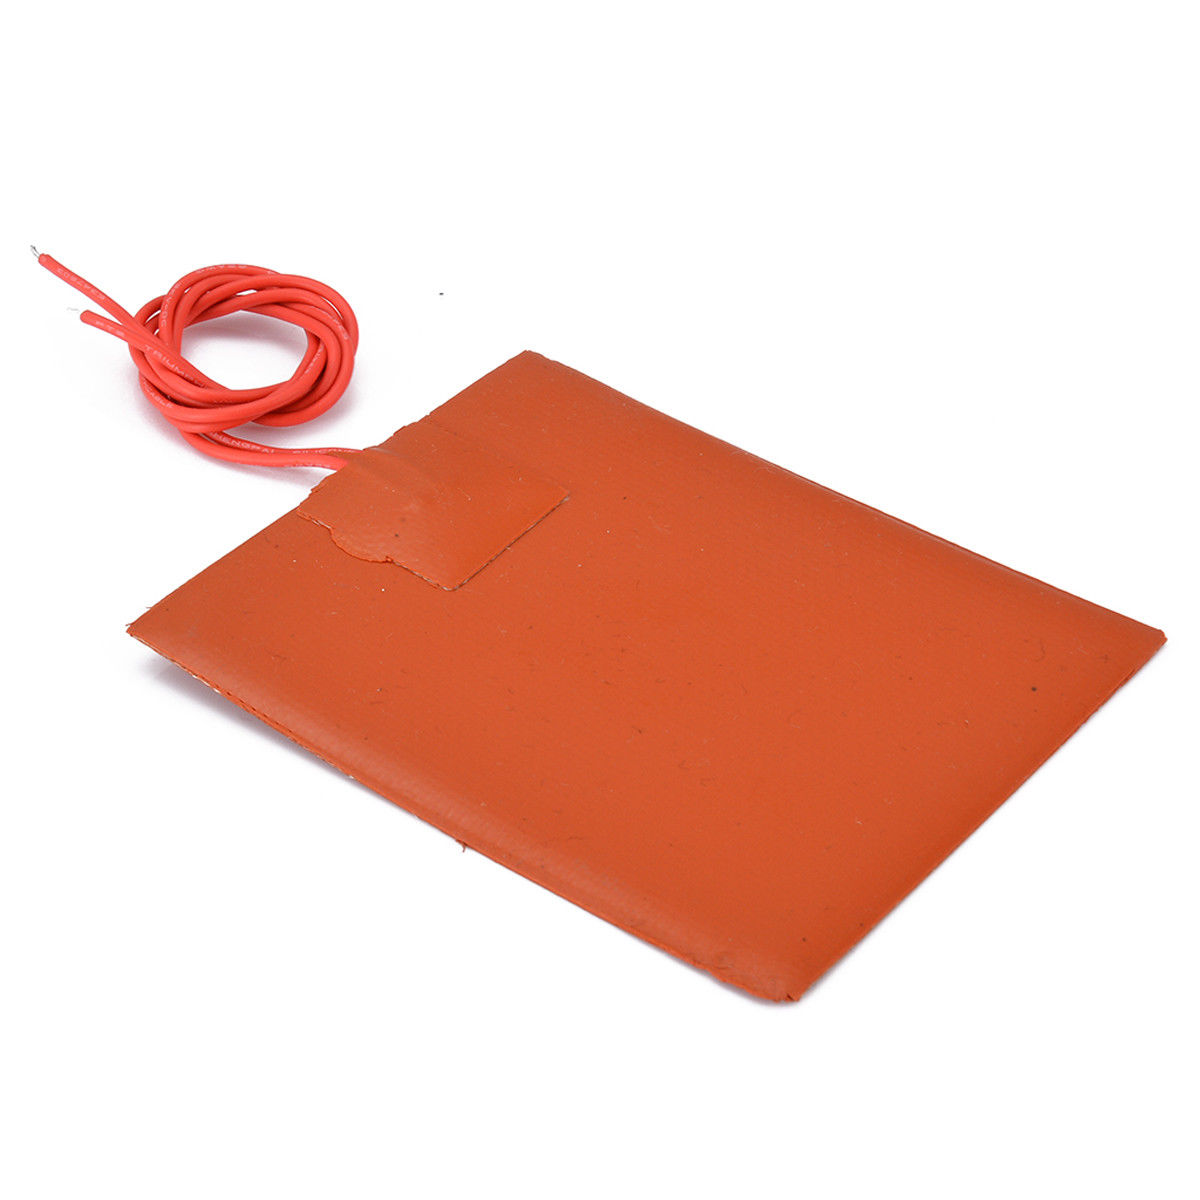 1PACK 80x100mm 20W Flexible Waterproof Silicon Heater Pad For 3D Printer Heater^